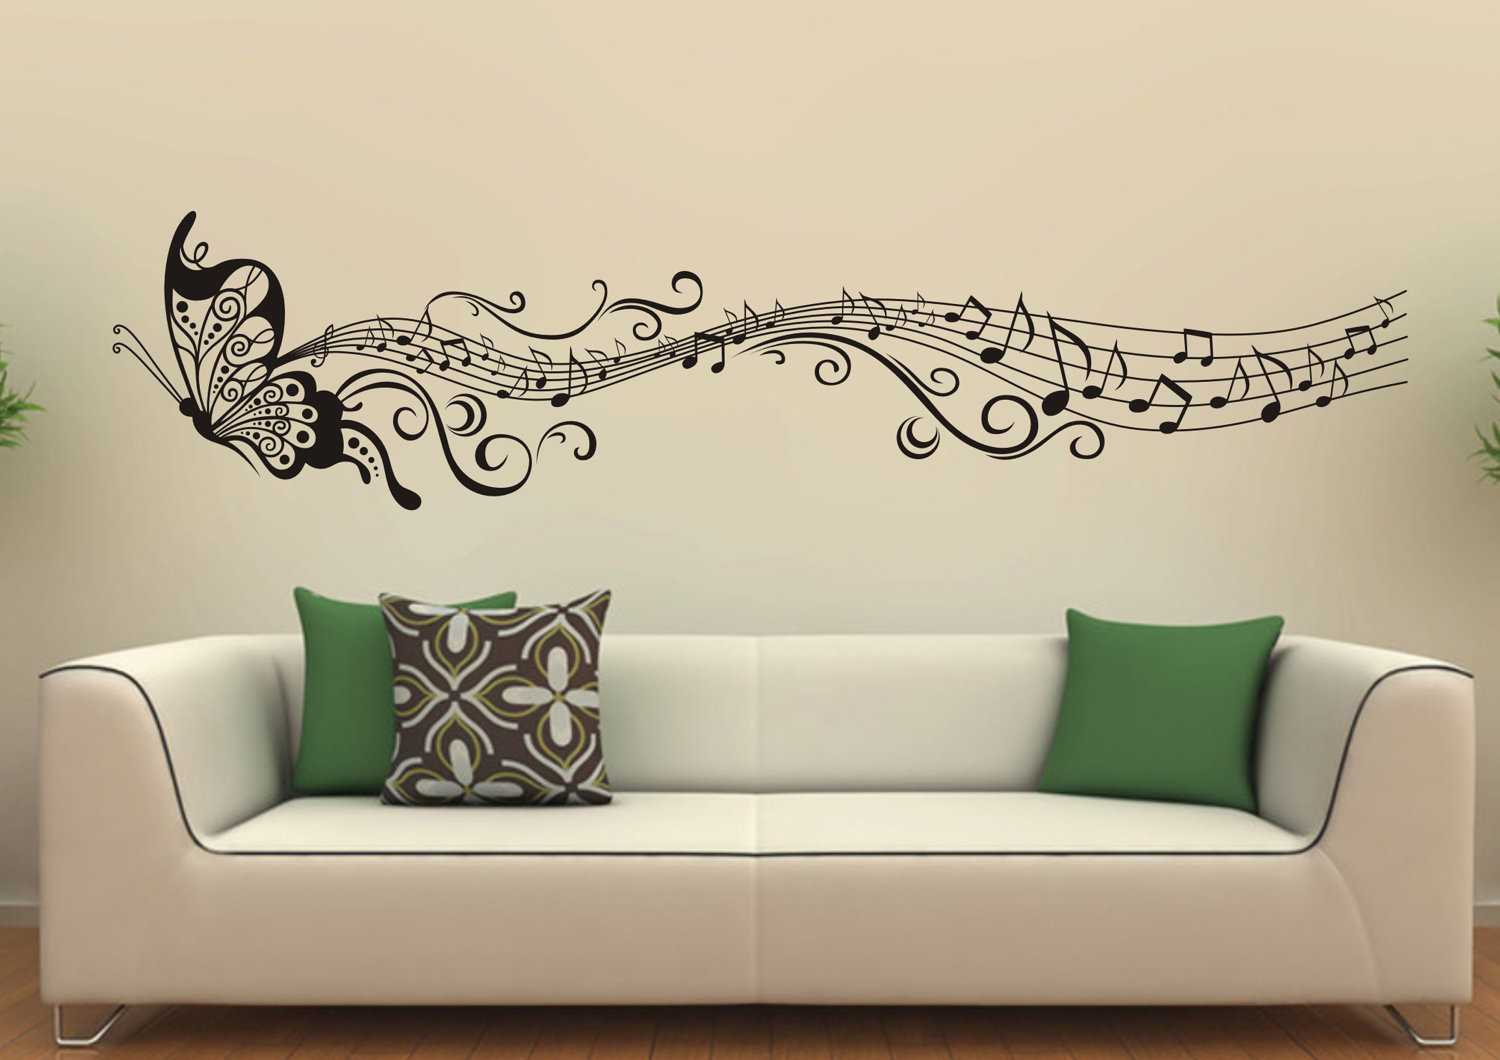 Hanging Wall Decor Ideas 30 Wall Decor Ideas For Your Home